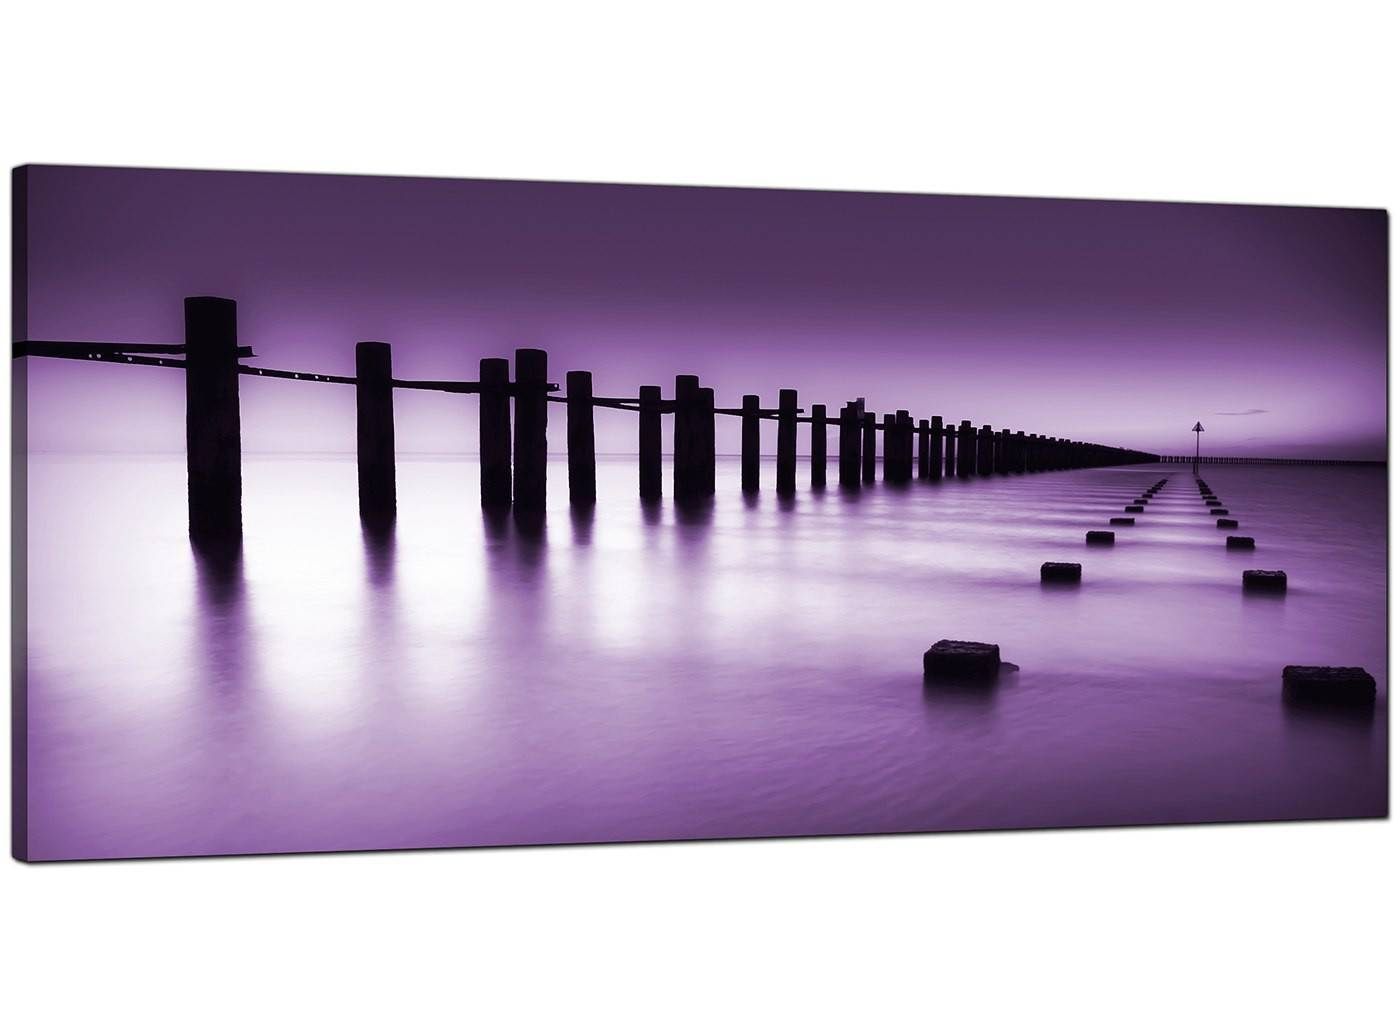 Cheap Purple Canvas Prints Of The Seaside Within Most Current Purple Canvas Wall Art (View 9 of 20)